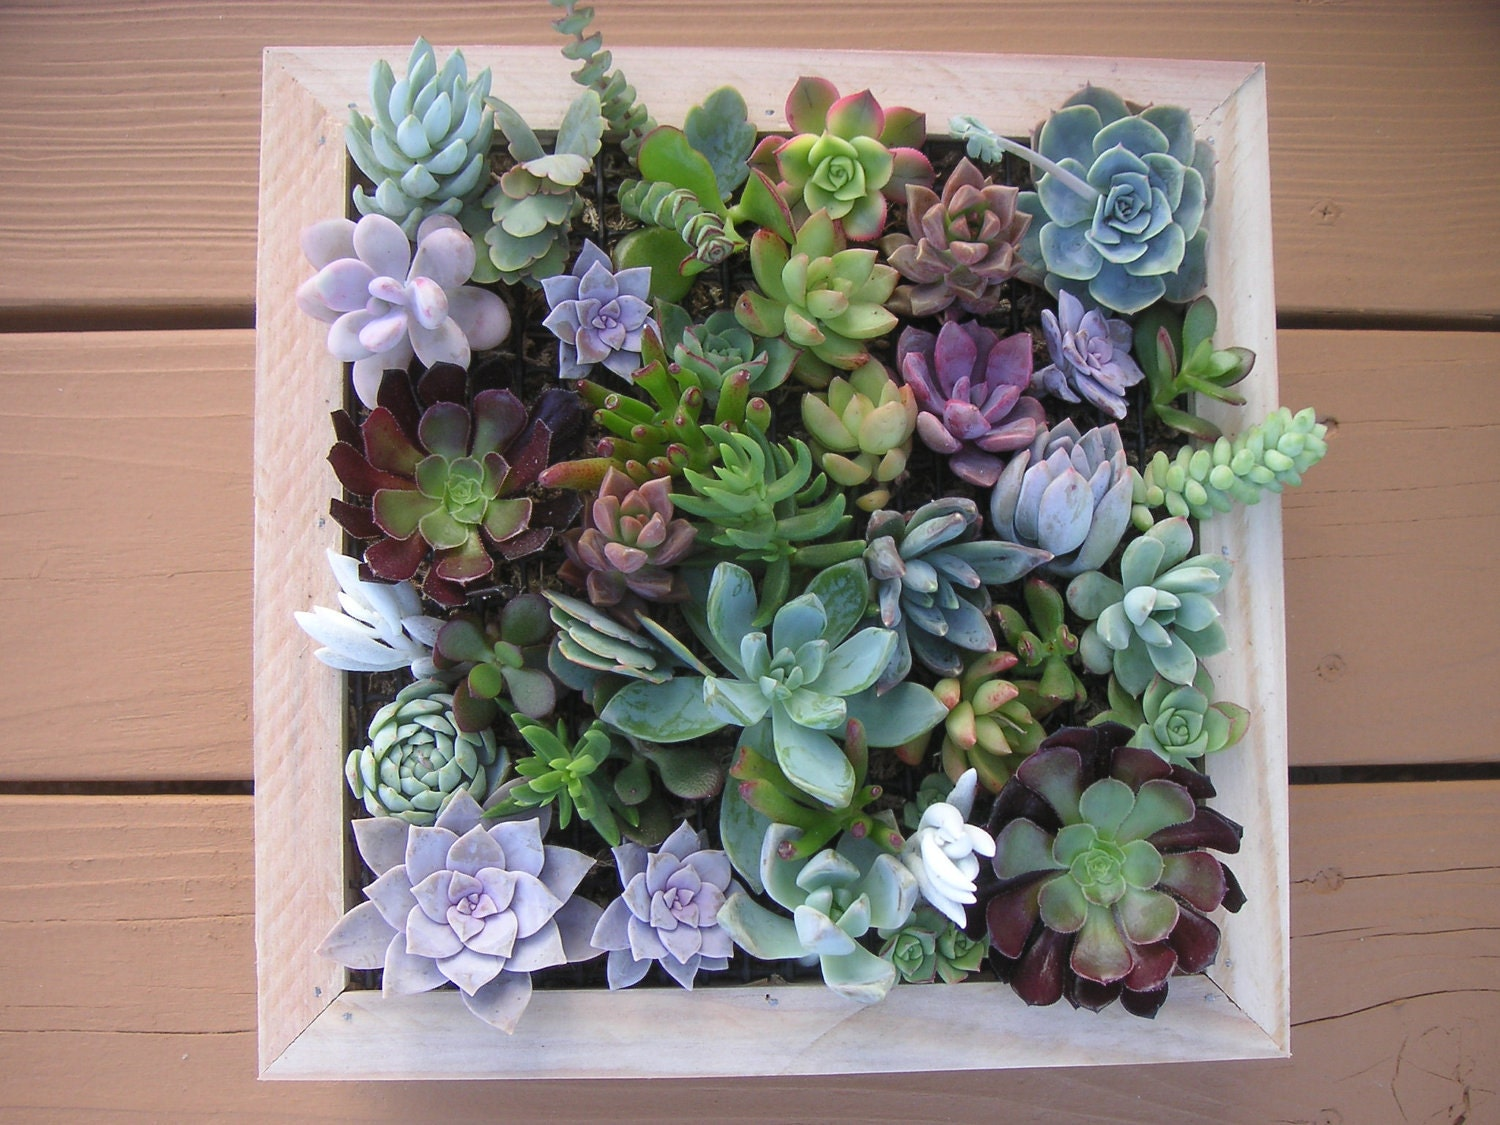 Complete Succulent Wall Art Kit, Comes With 25 Cuttings, Moss And Soil